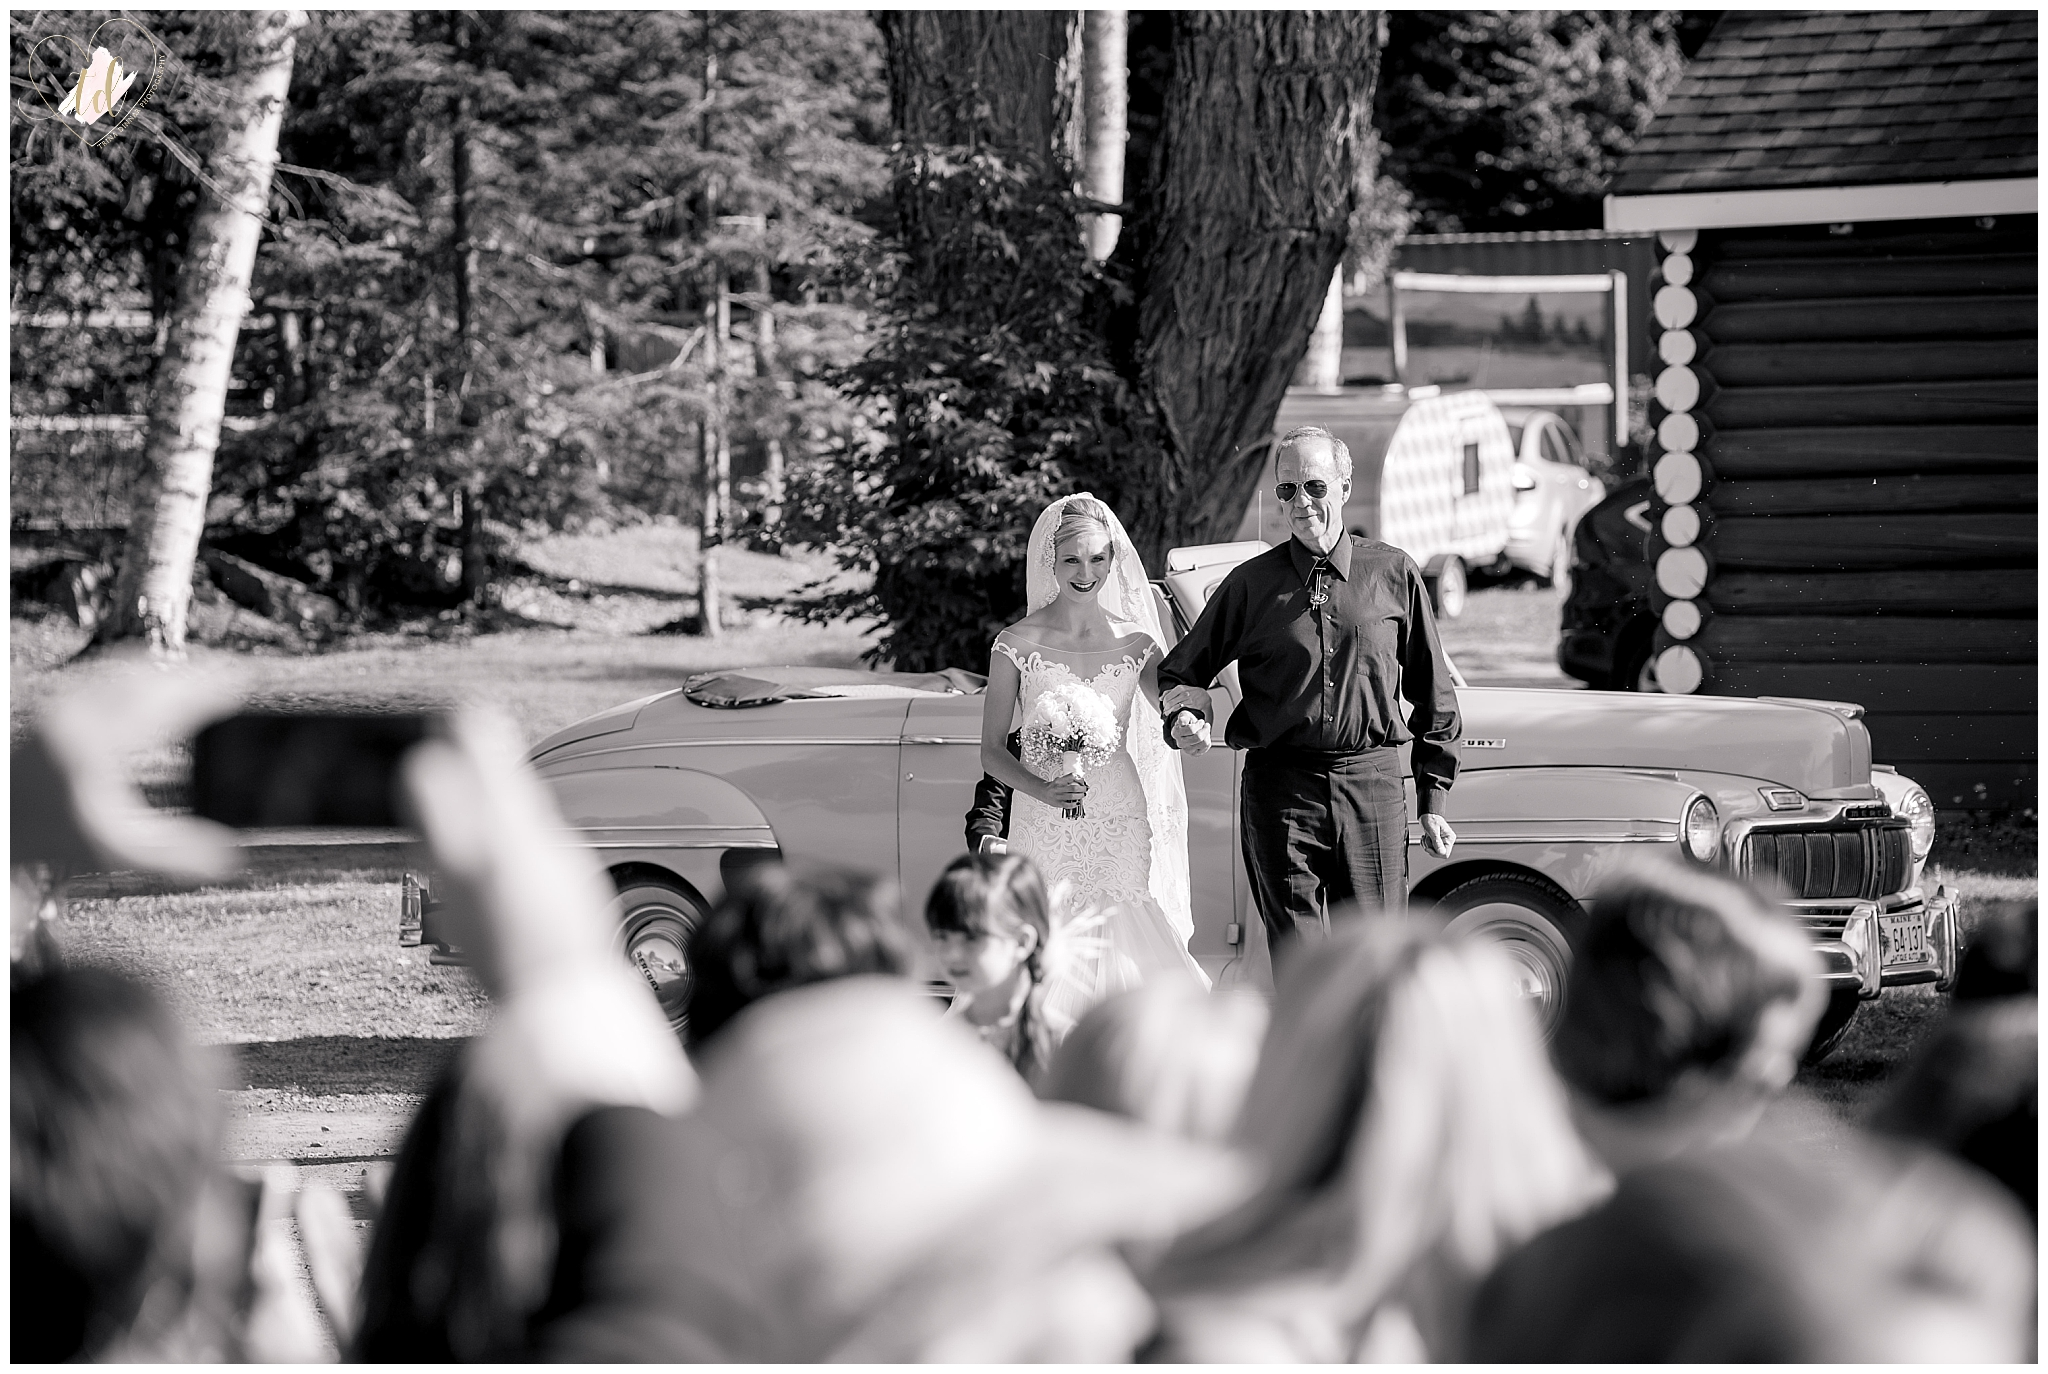 Bride walking down the aisle with her father during Maine wedding ceremony.